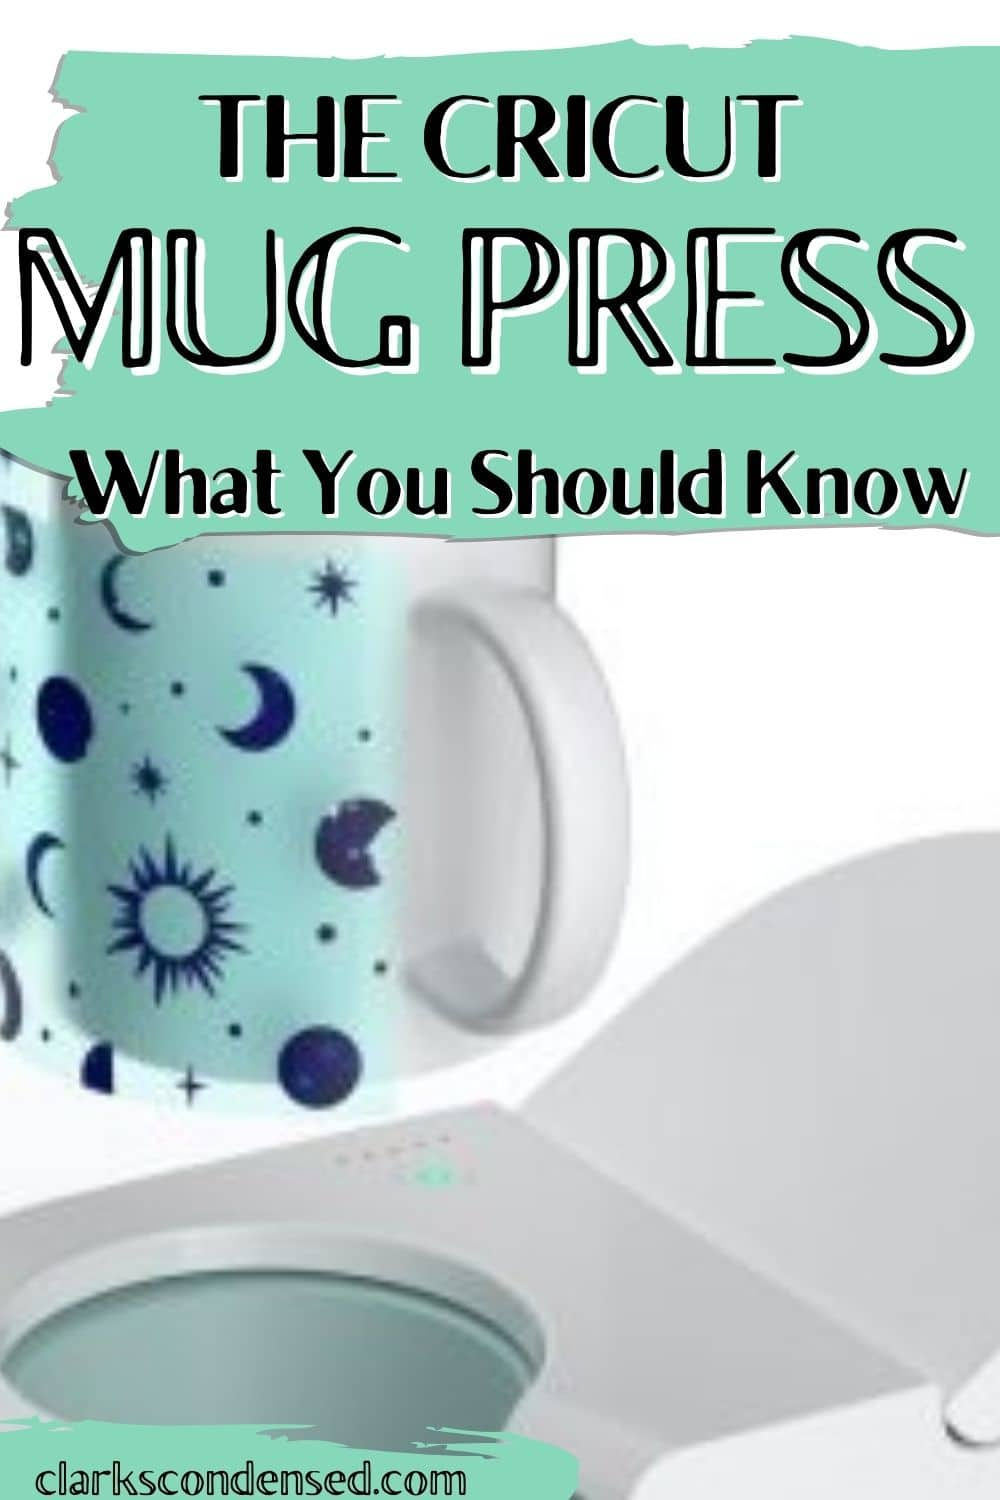 The Cricut Mug Press was just released - is this something you should rush to the store to buy? Here are my initial thoughts on the product release and what you should know! via @clarkscondensed